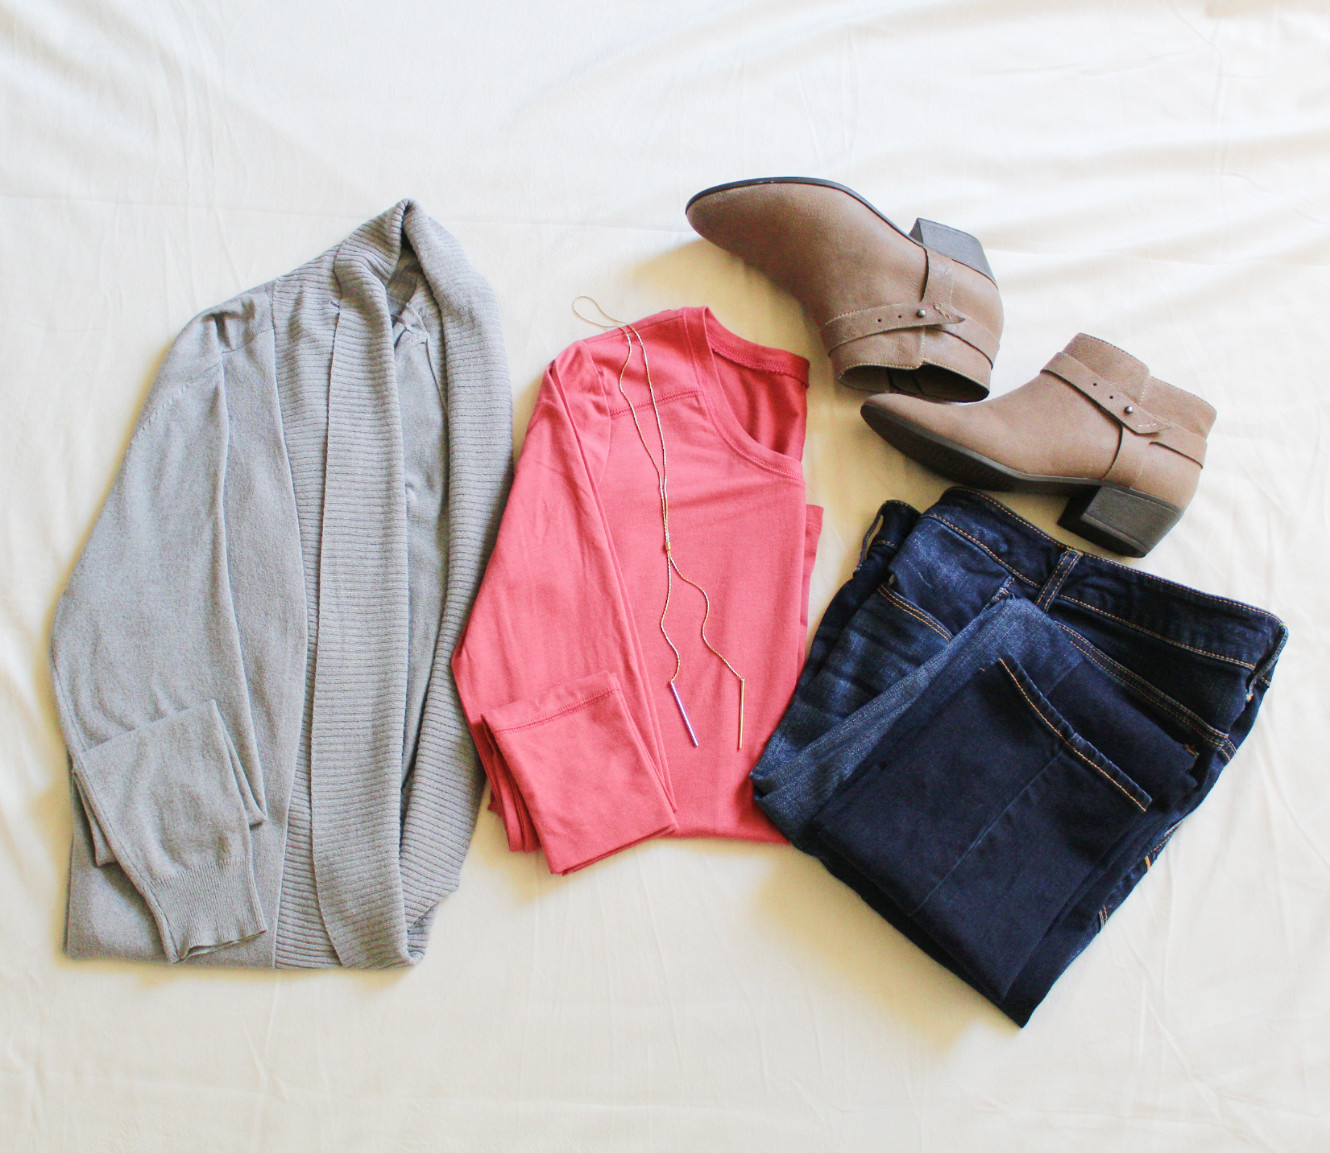 Gray Cardigan, Blush Tee, Jeans, Boots